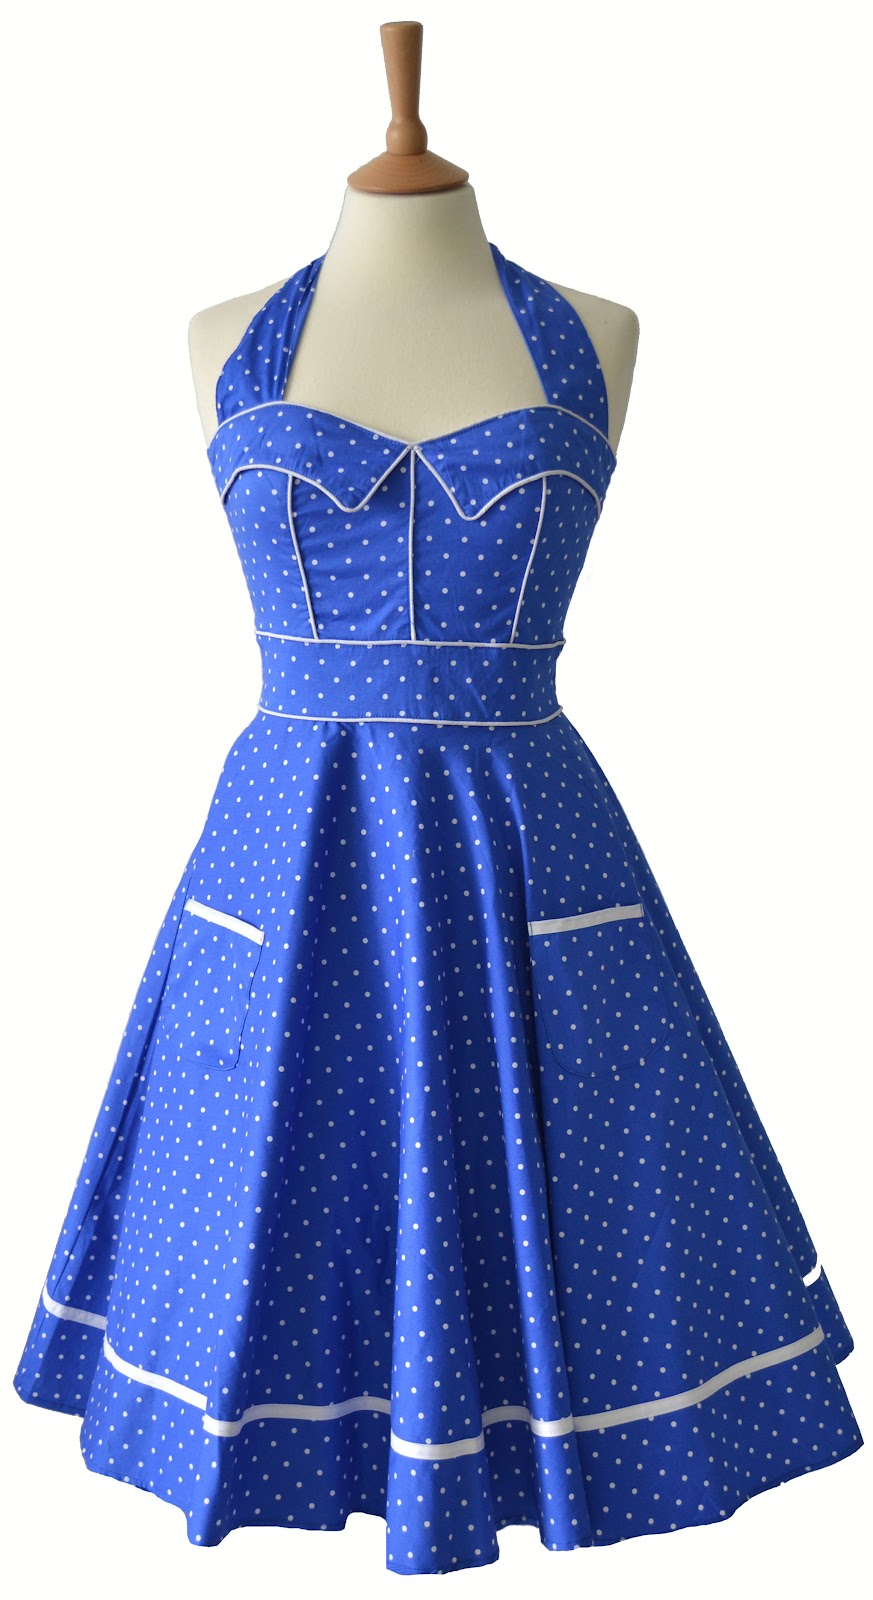 Clothing Company Blog Just Arrived At Nbvcc 1950s Vintage Style 5 Vintage Style Dresses Plus